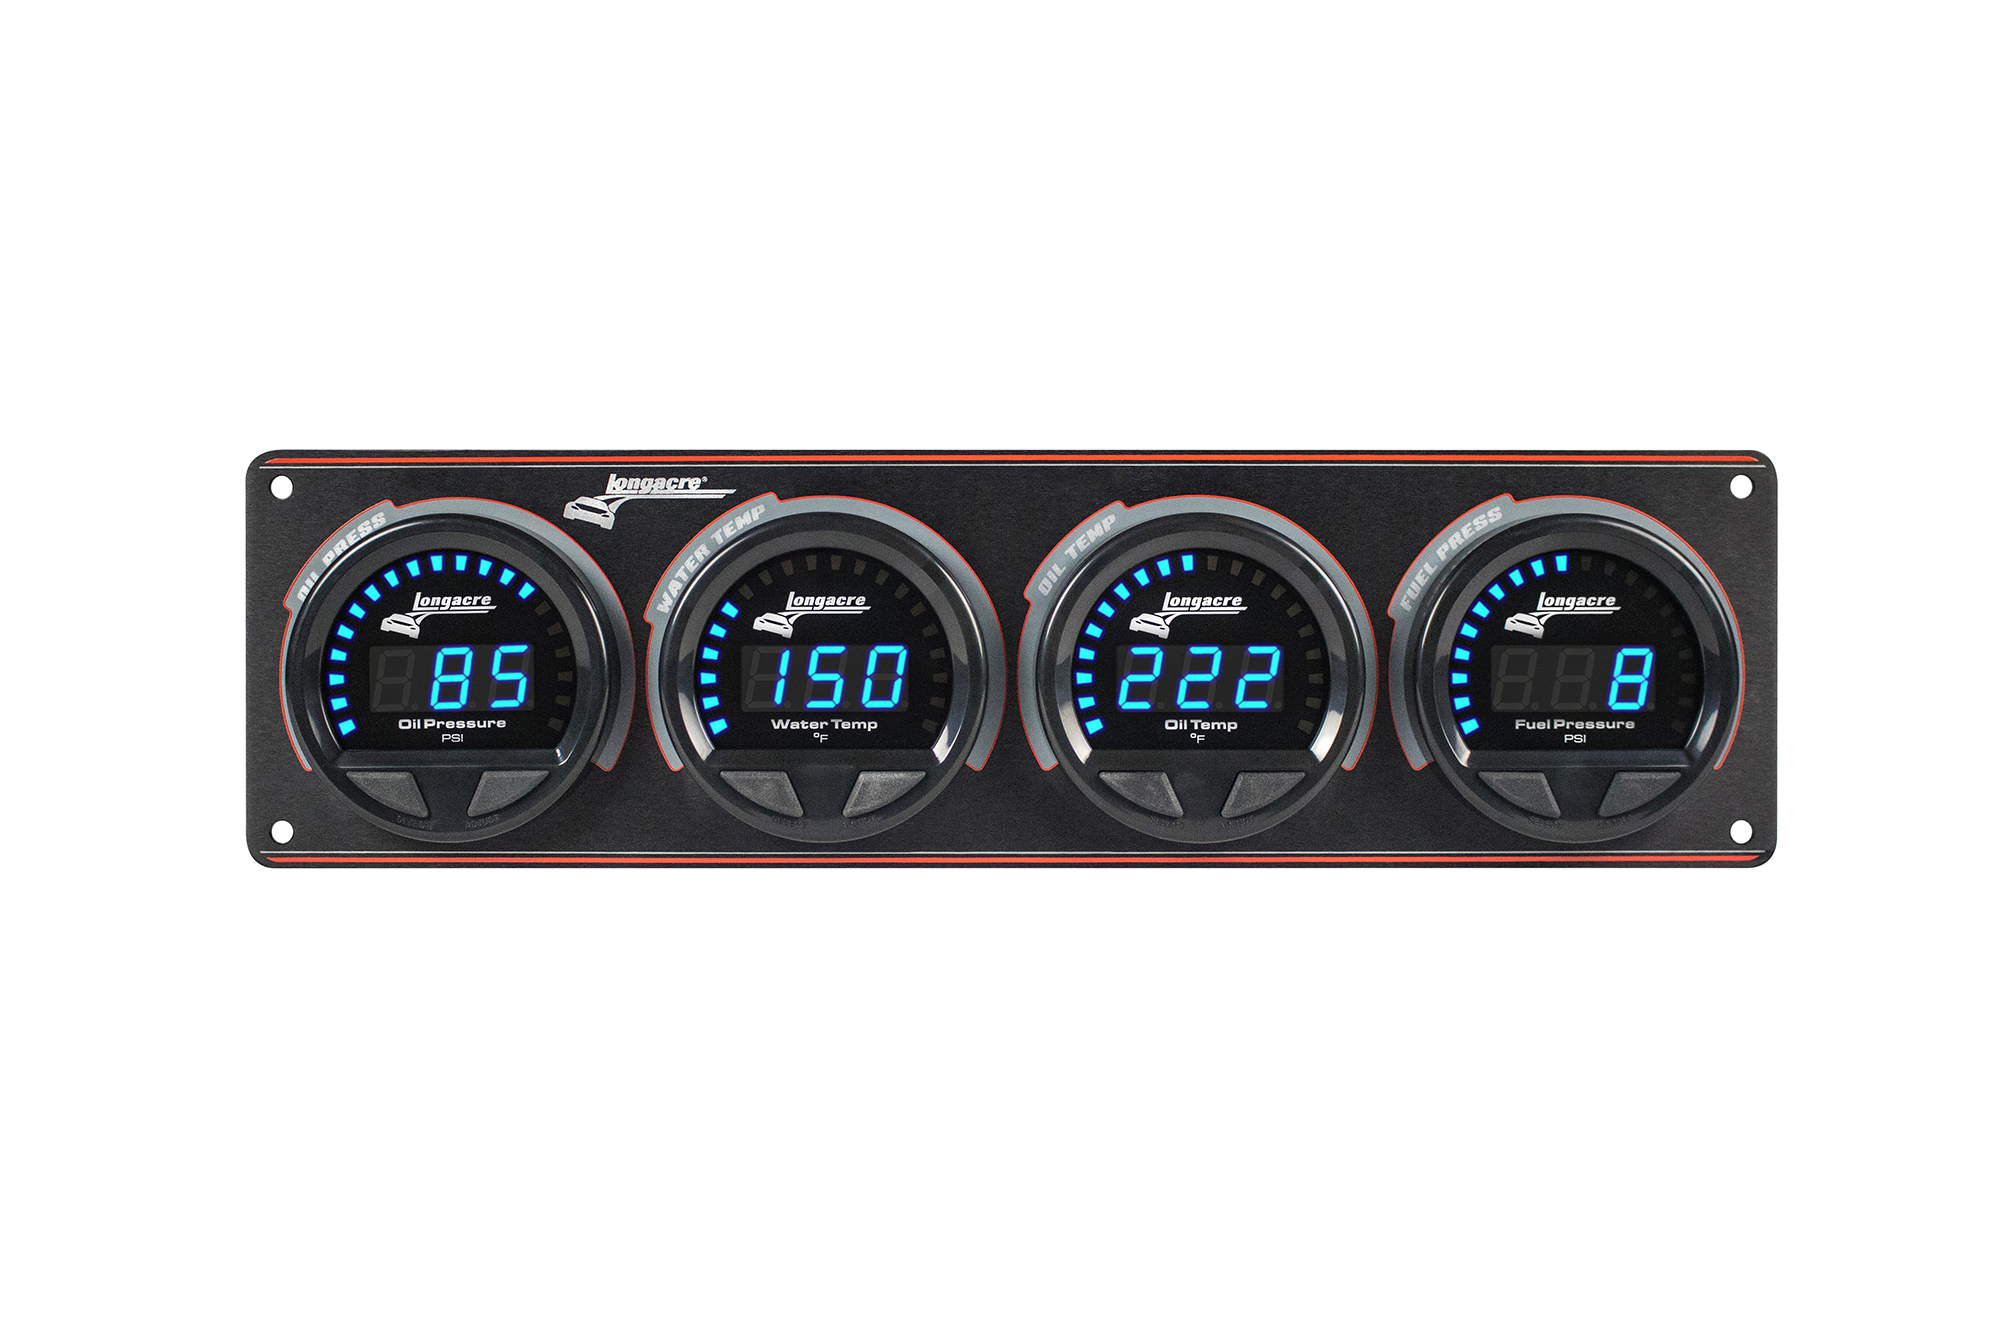 Digital Elite Waterproof Gauge Panel, 4 Gauge Oil Pressure/Water Temperature/Oil Temperature/Fuel Pressure 15psi